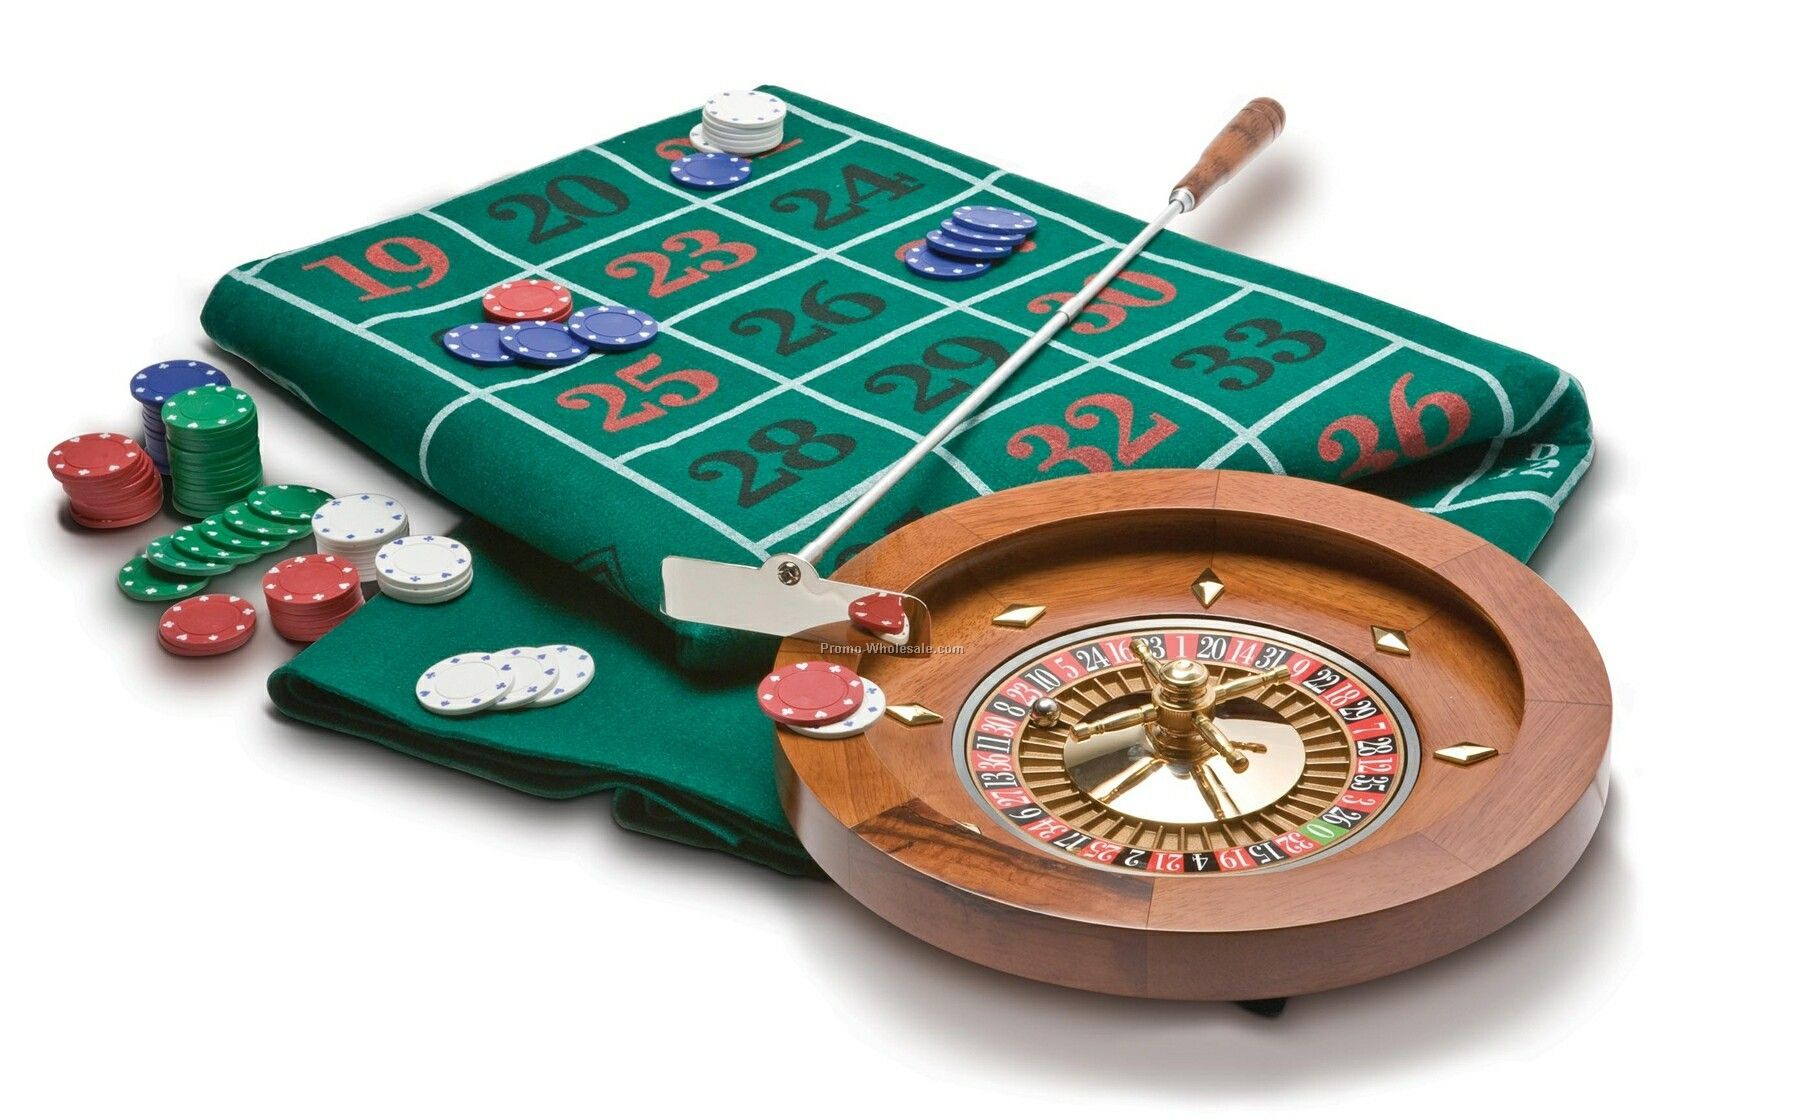 Ever wanted to gamble without having to search for a casino nearby or without being physically present there? An online casino can give you an opportunity